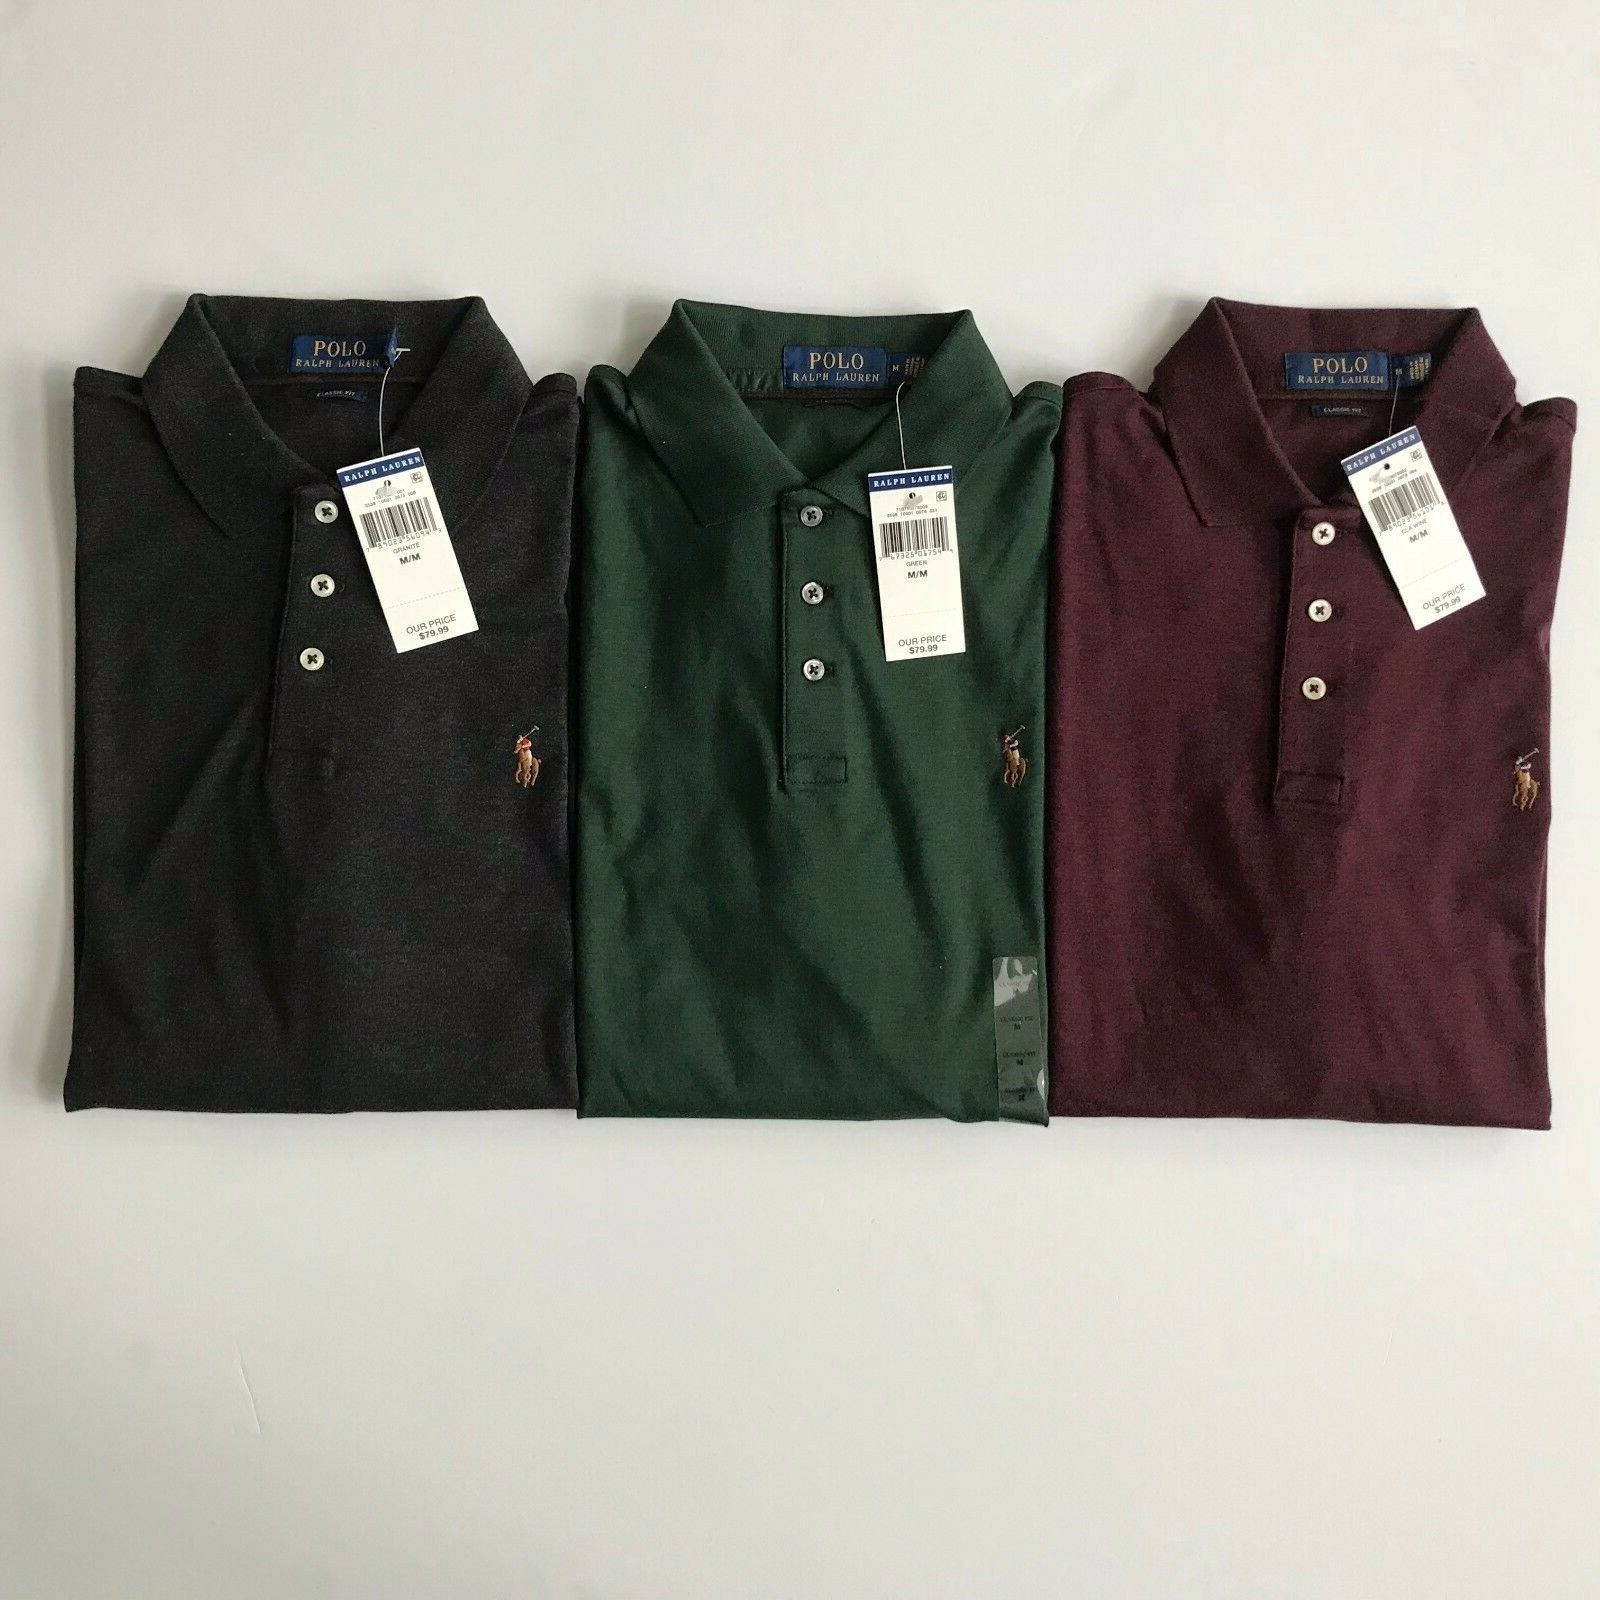 NWT Polo Ralph Lauren Men's Long Sleeve Solid Classic Fit Soft Touch Polo Shirt